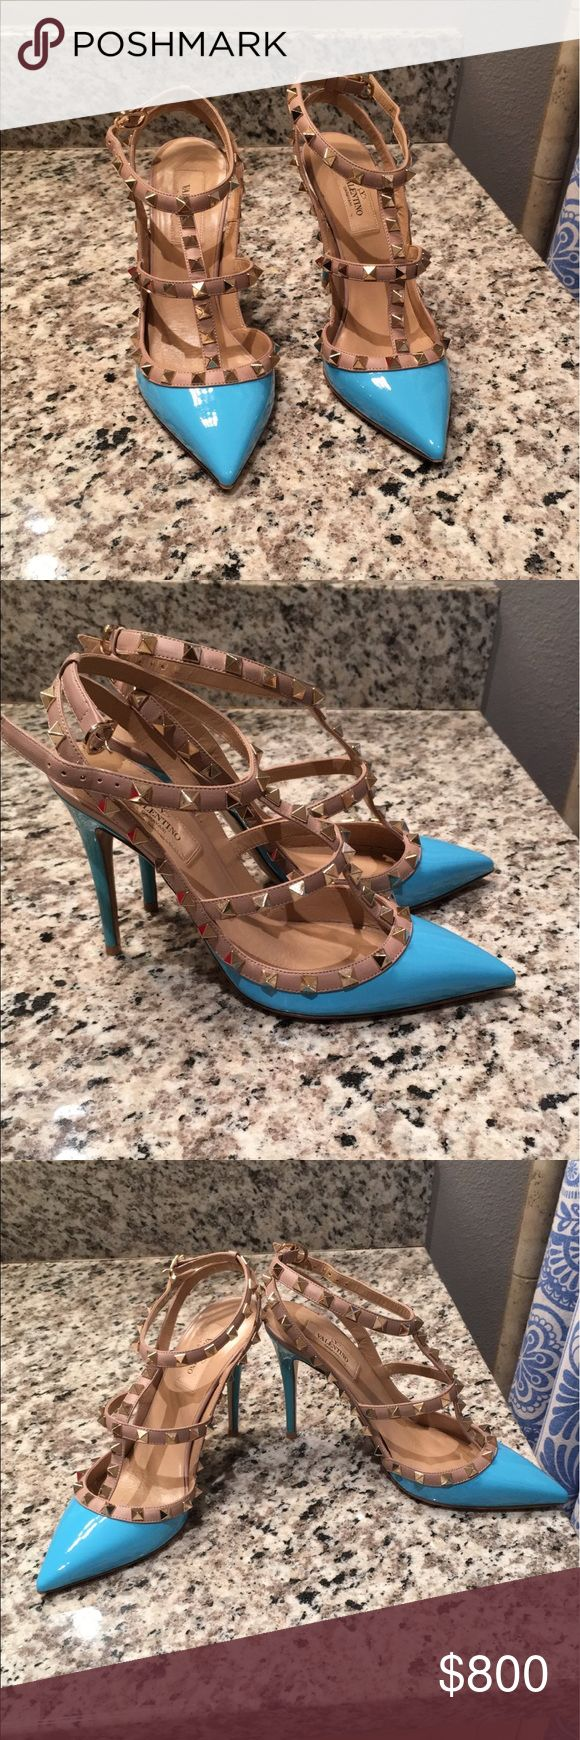 Valentino Rockstud Pumps Almost- new condition. Valentino rockstud pumps in turquoise. Box, dustbag and extra studs included. Size 38. Dont miss out on these beauties. Valentino Shoes Heels